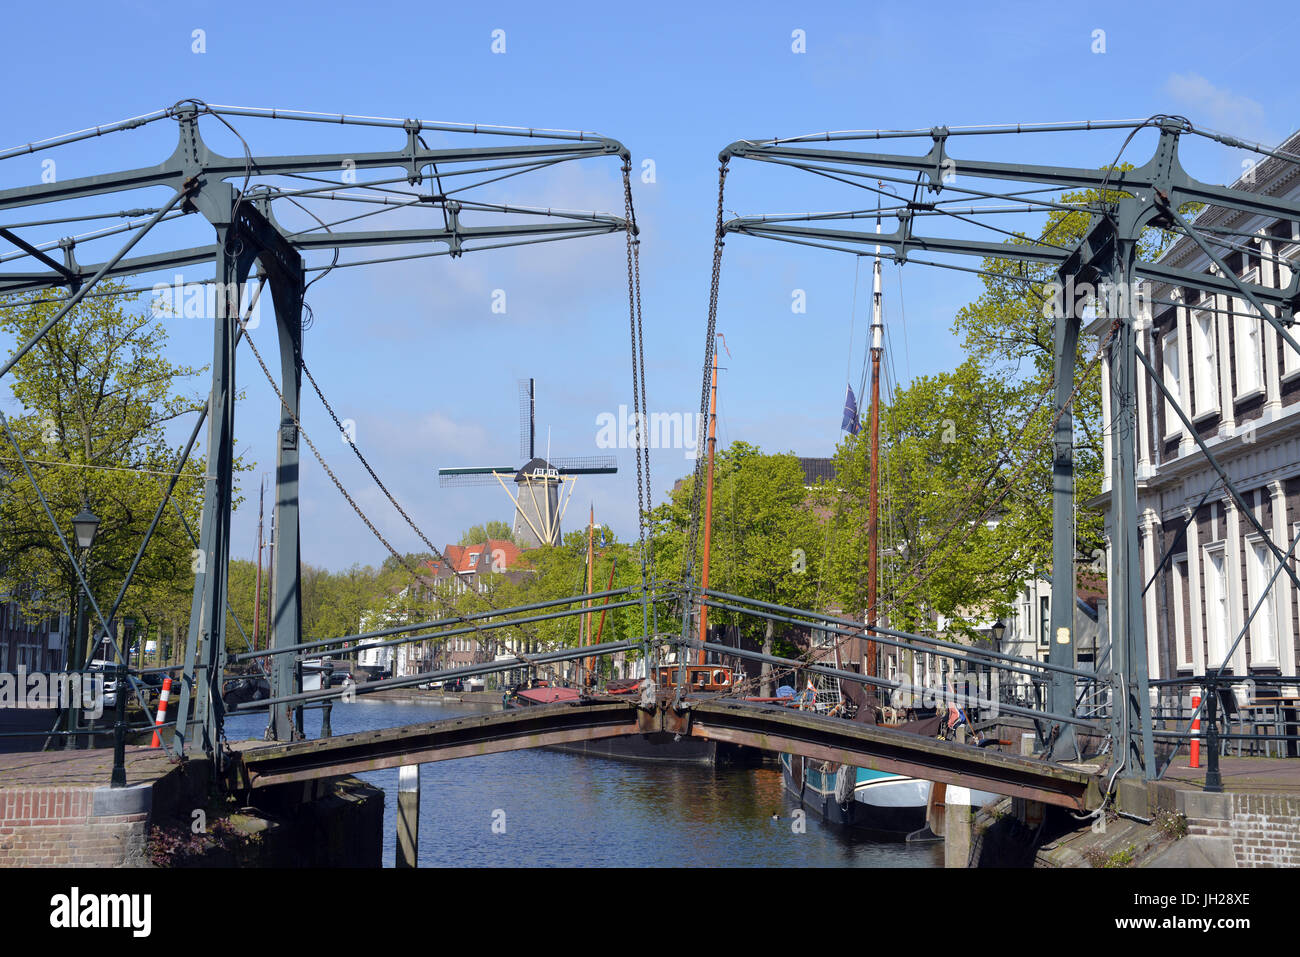 Canals and windmills at Schiedam, Netherlands, Europe Stock Photo